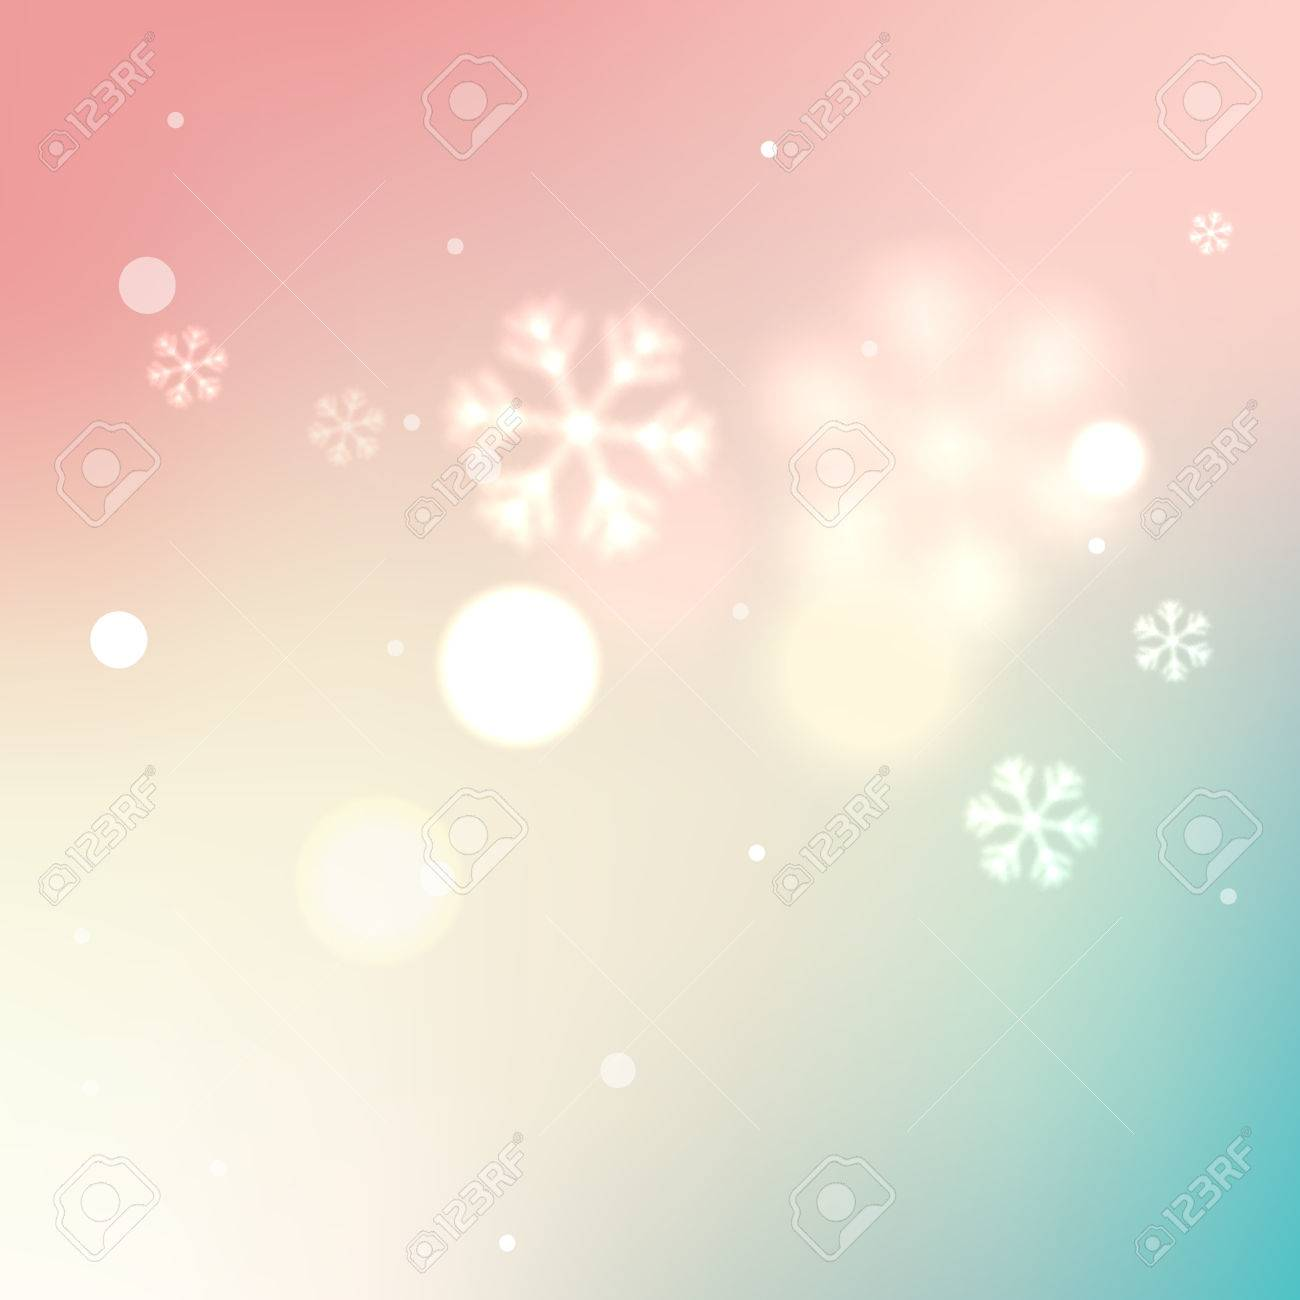 vector soft blurred winter background snowflakes pink vector vector soft blurred winter background snowflakes pink yellow and turquoise color illustration backdrop for card or flyer design